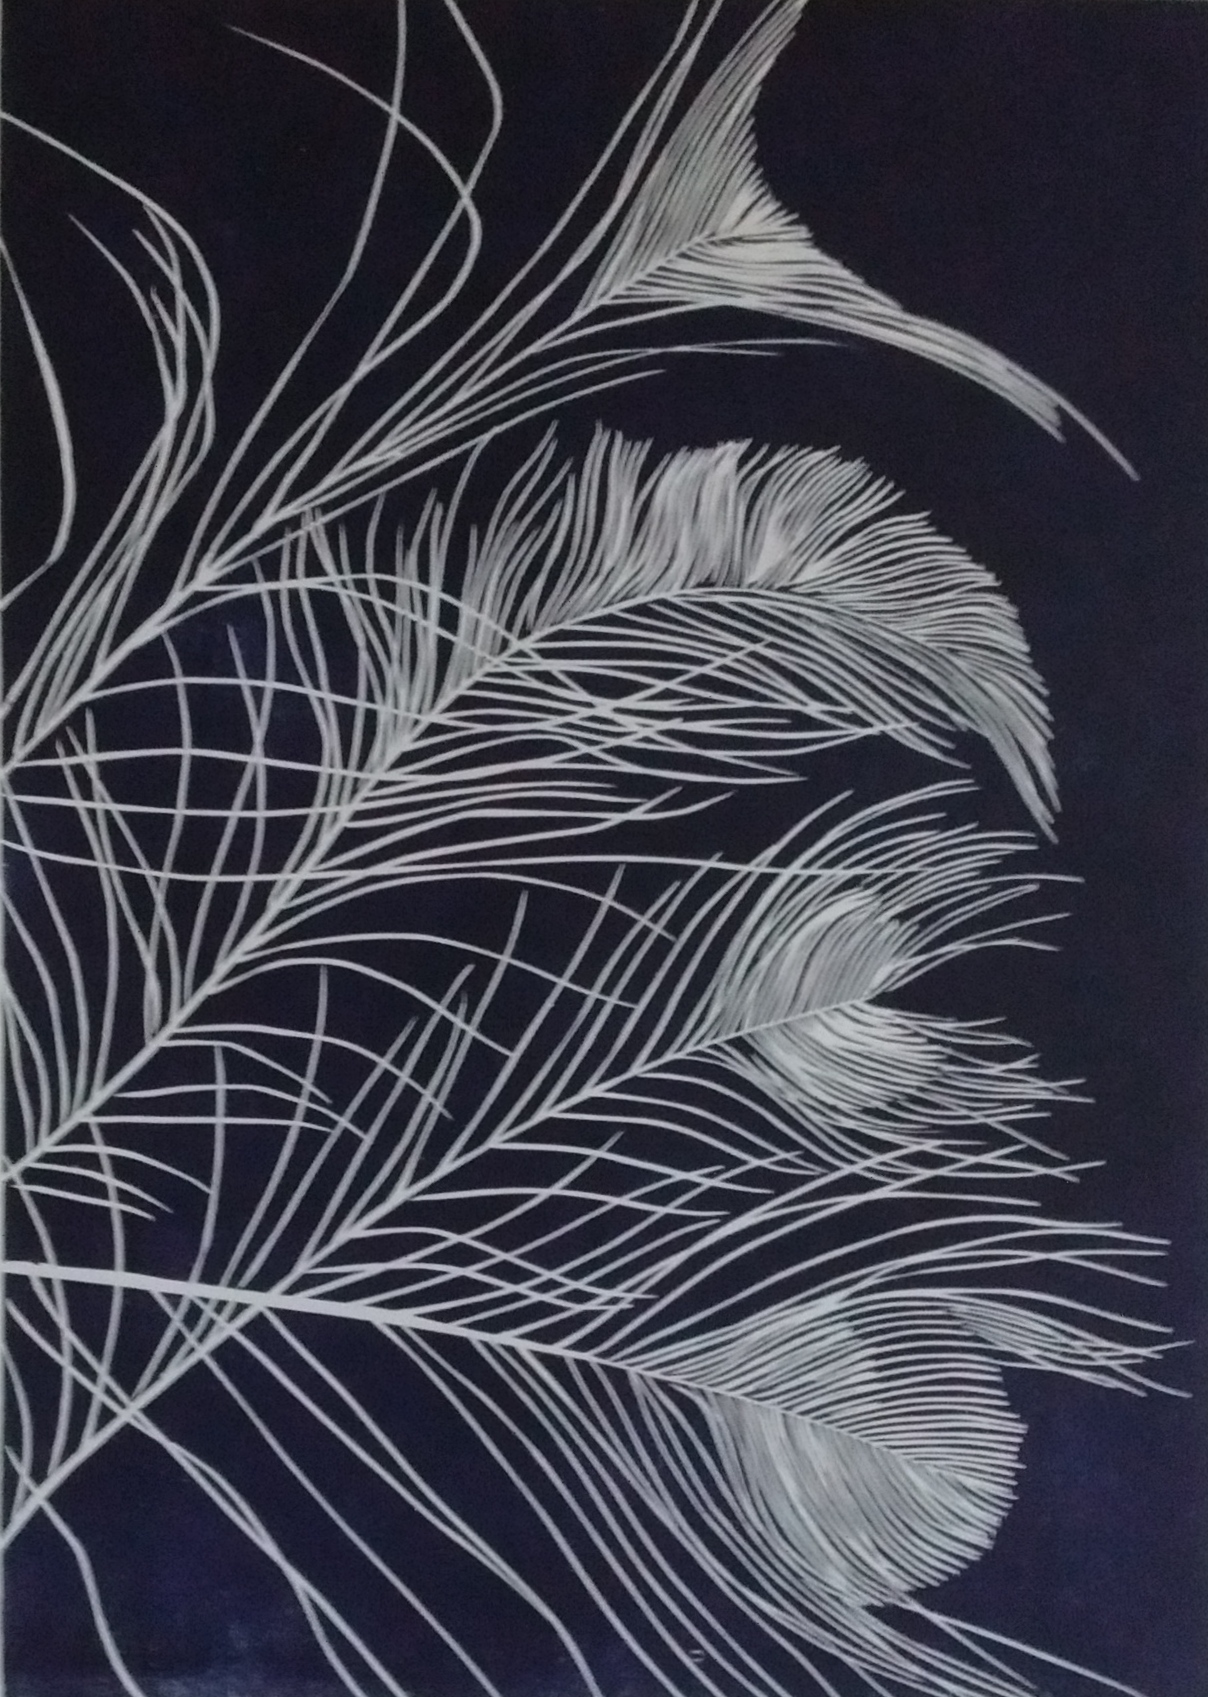 Terri Brander_ For Flight or Fancy 42 cm x 30 cm (image only) Woodcut.jpg